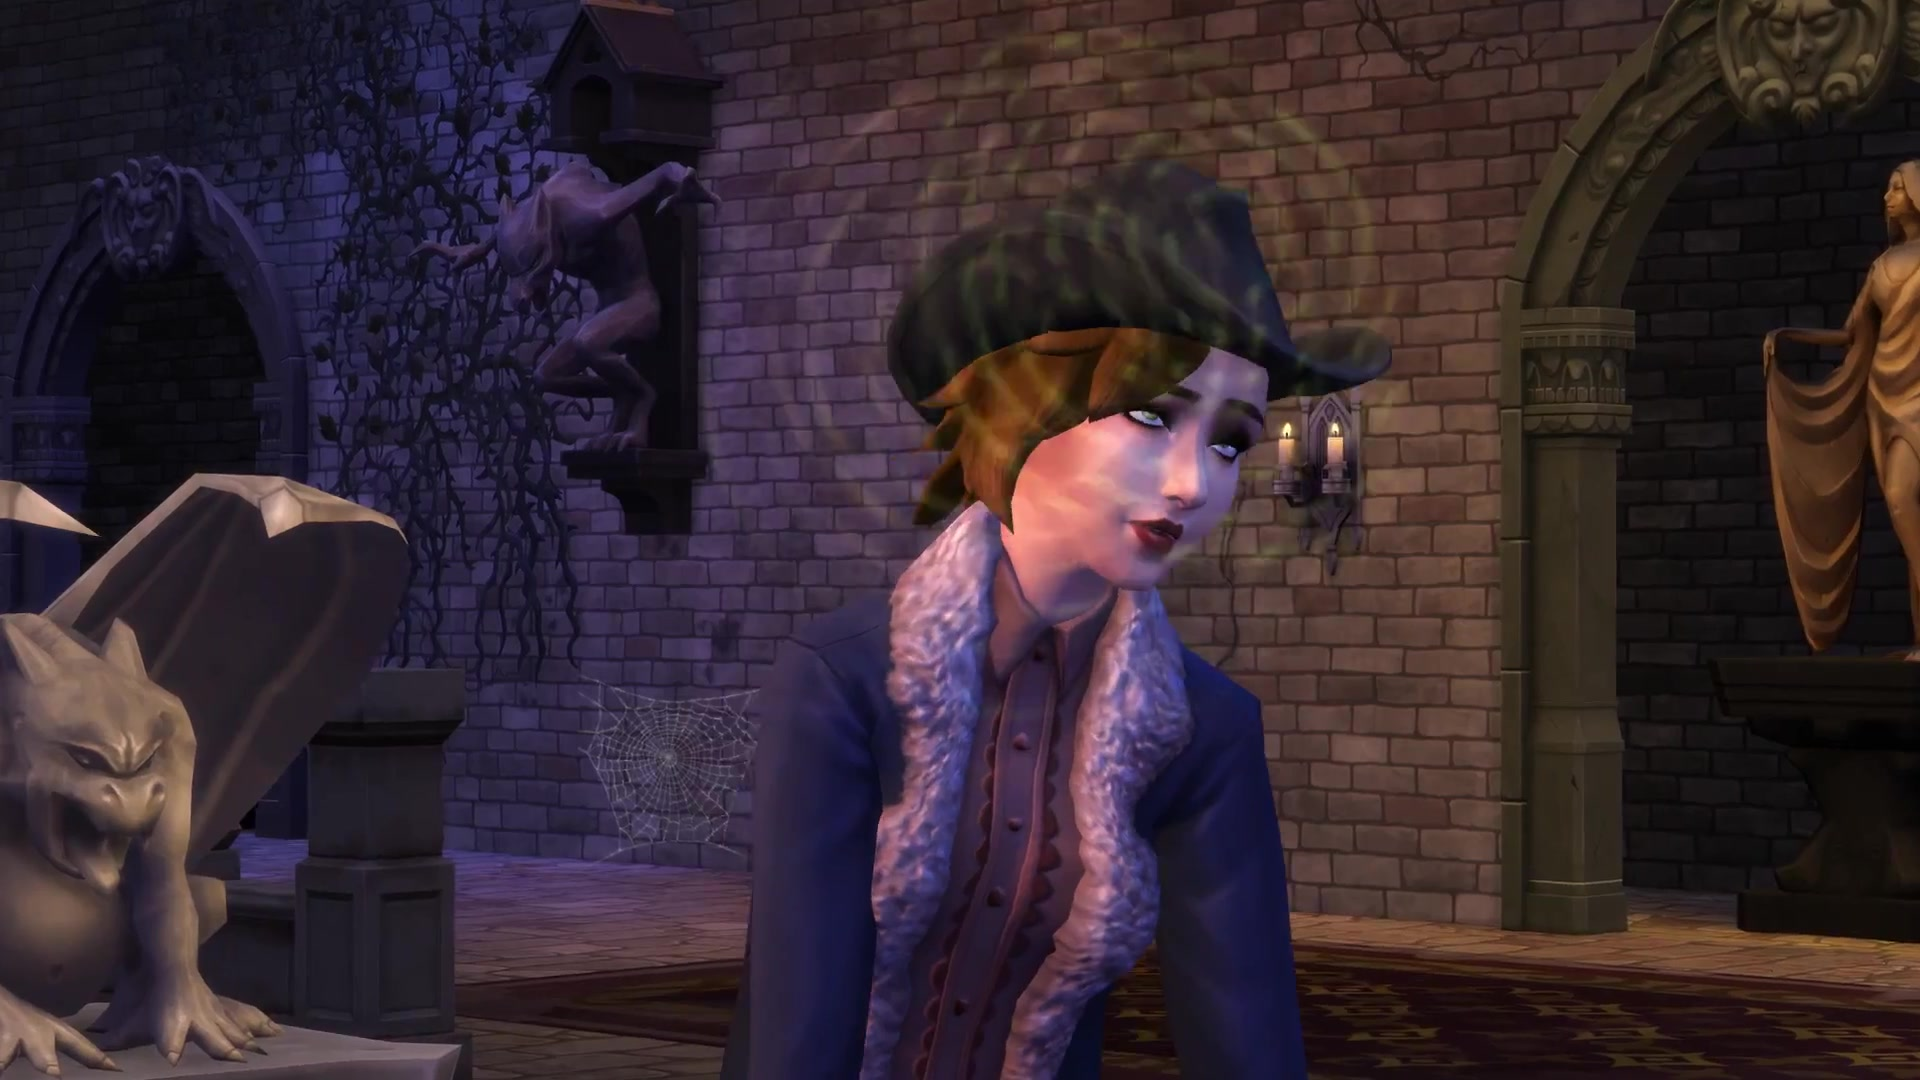 The sims 4 vampires free download